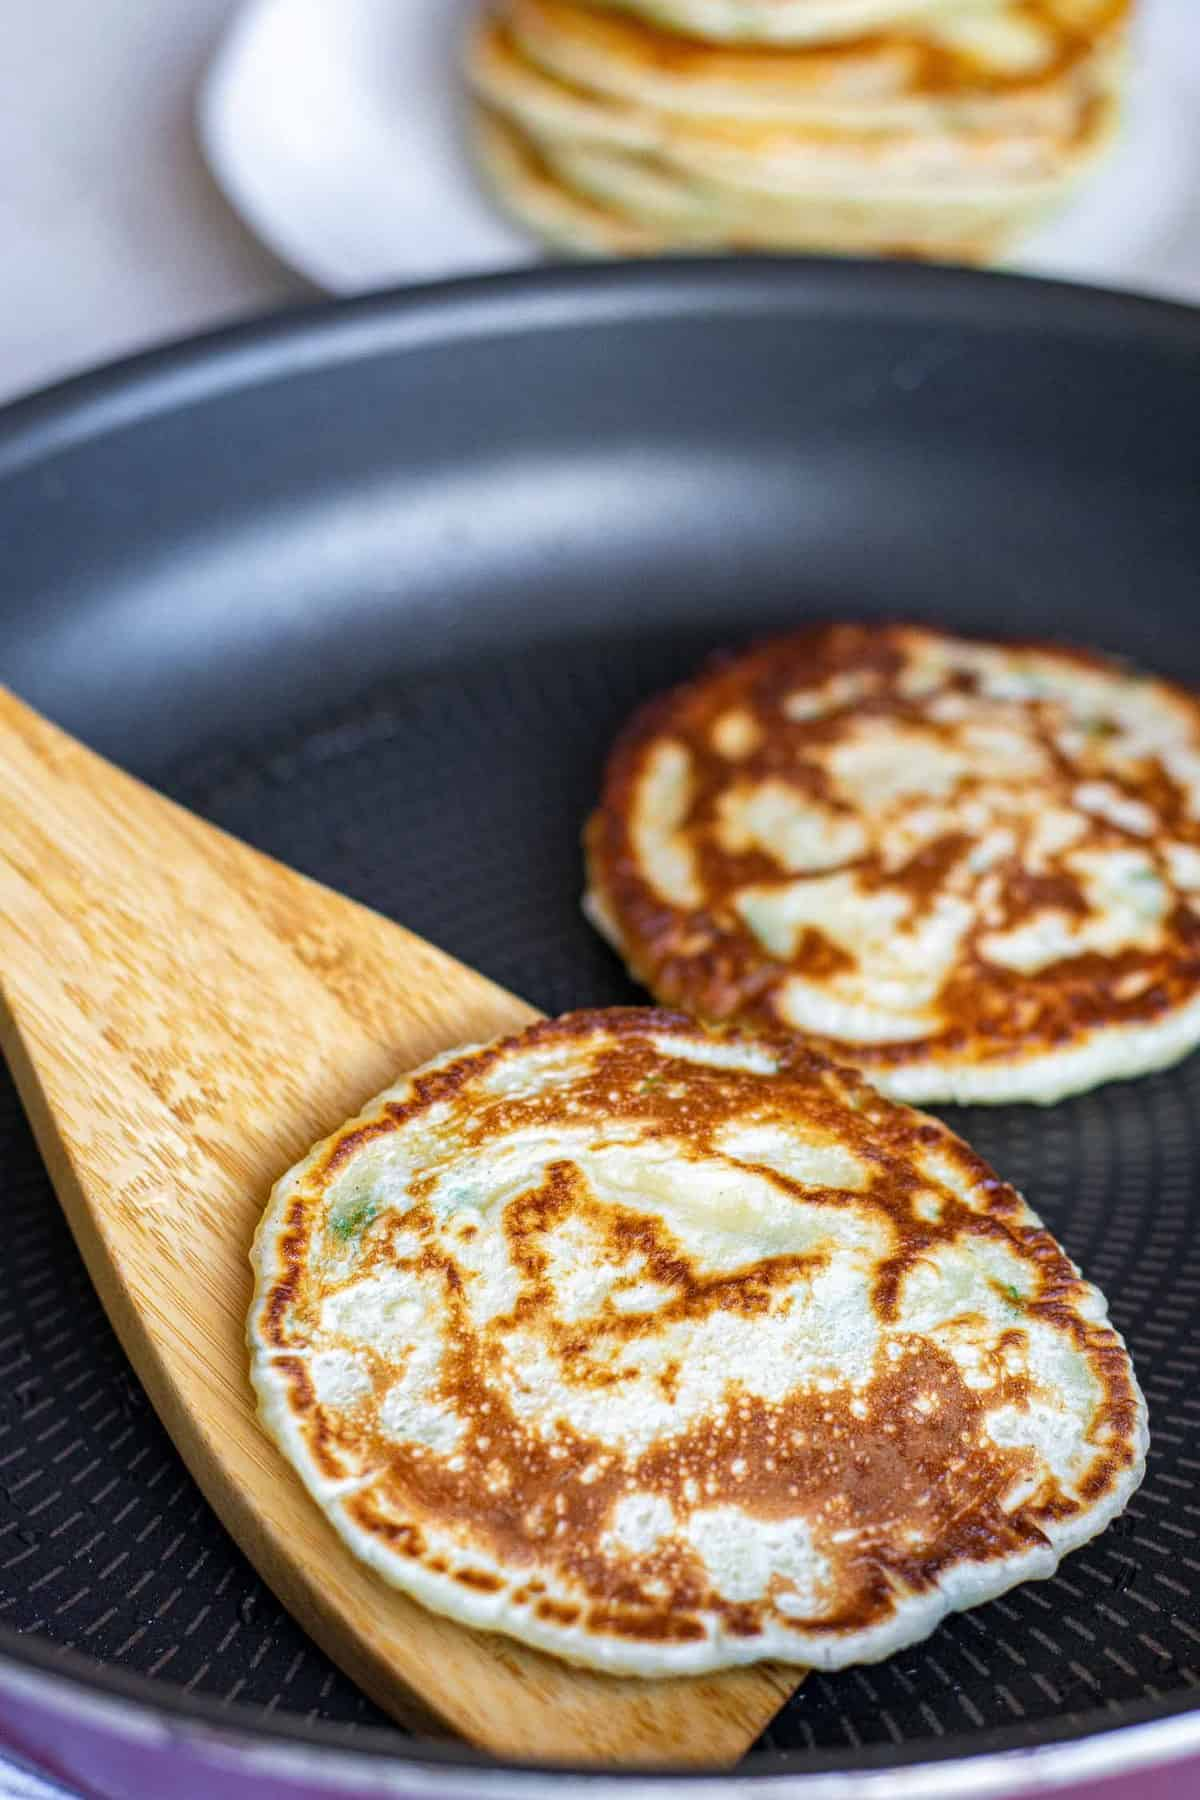 Pancakes being cooked in a frying pan.